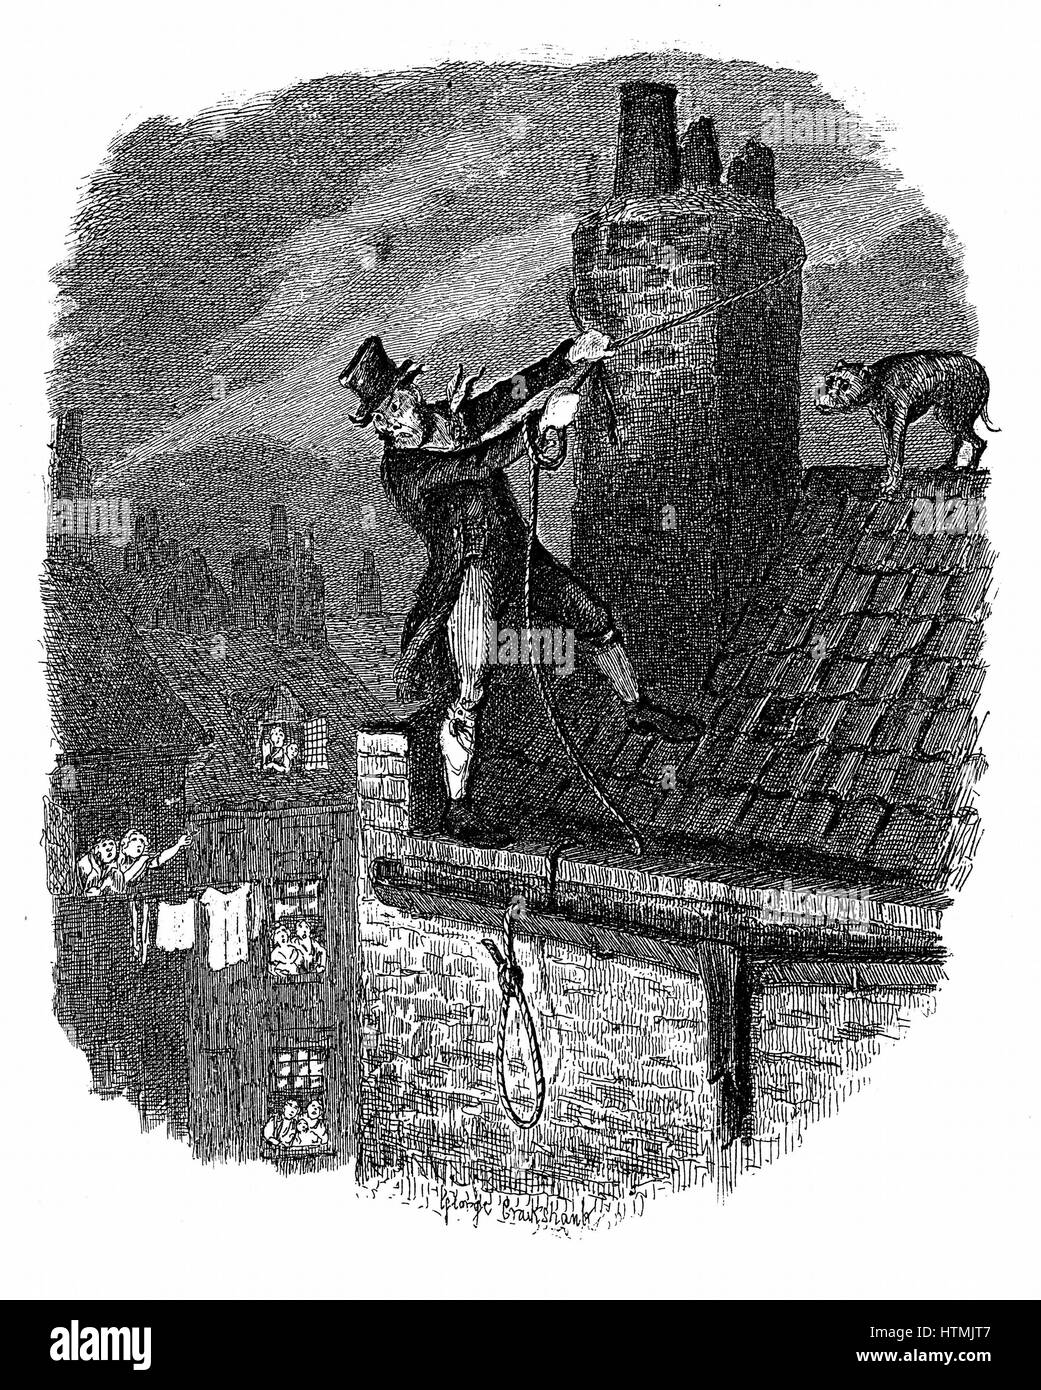 The Last Chance: Bill Sykes attempting to escape from the law over the rooftops, falls and hangs himself with his - Stock Image